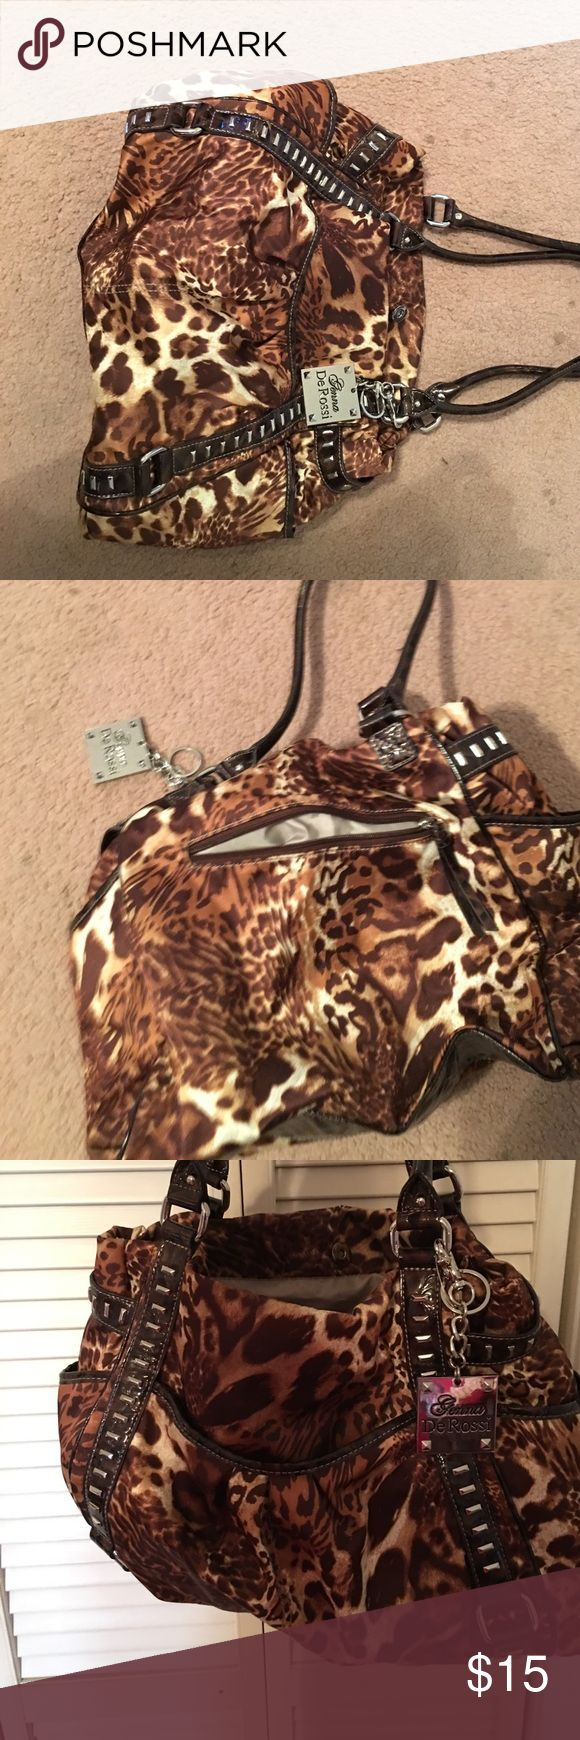 Genna De Rossi leopard purse Leopard purse with multiple pockets. No rips, tears or stains. Bags Shoulder Bags